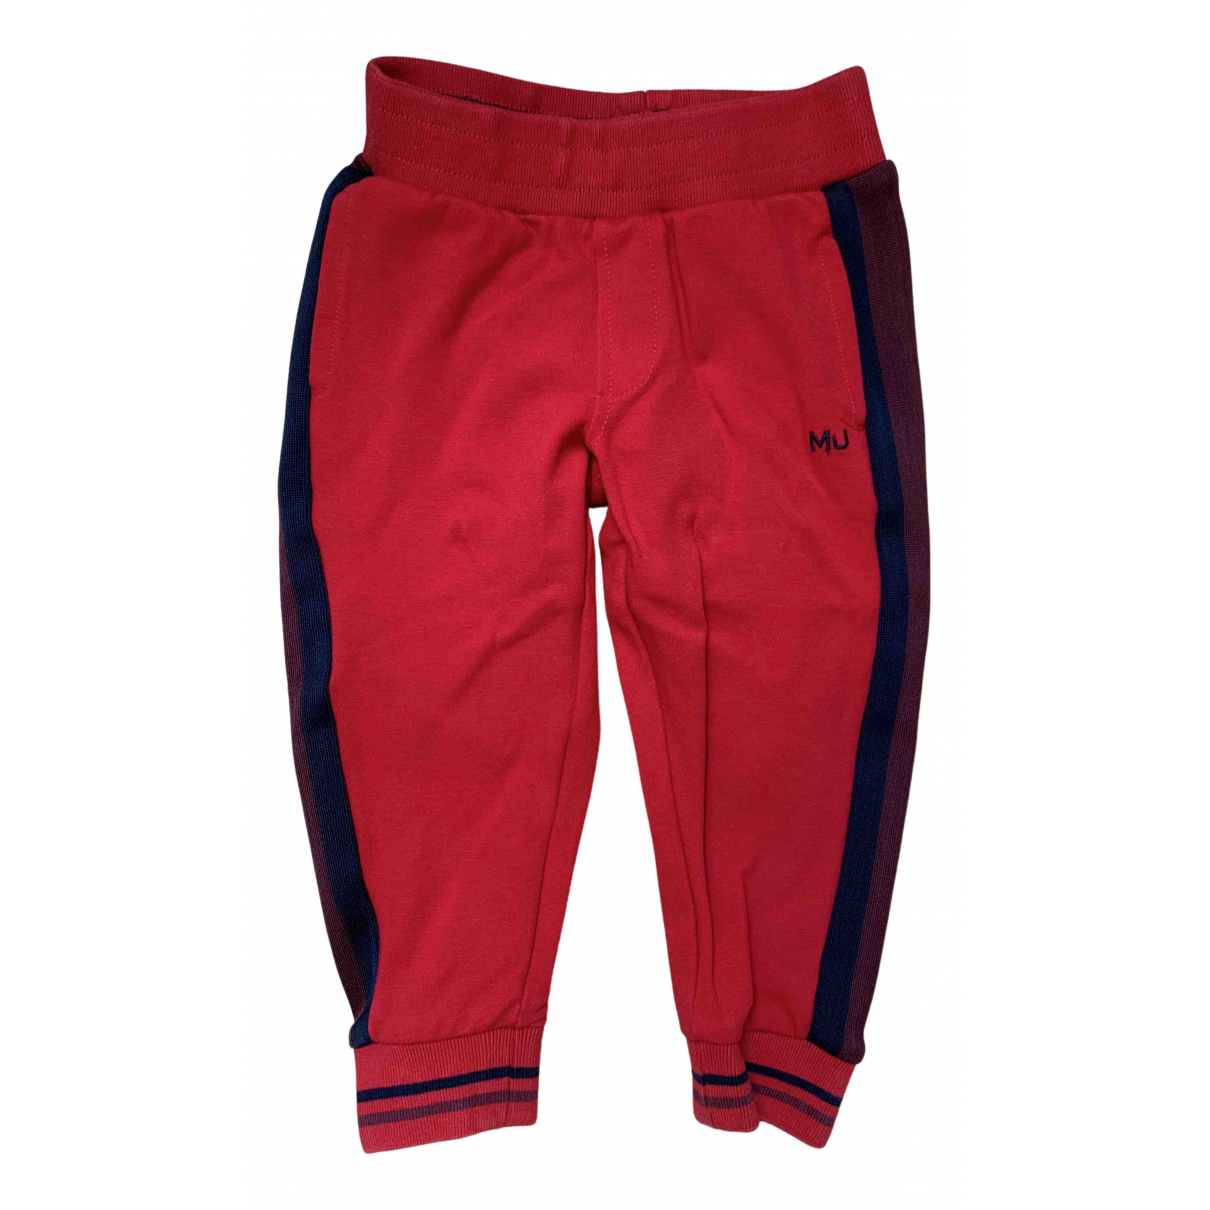 Little Marc Jacobs N Red Trousers for Kids 3 years - up to 98cm FR